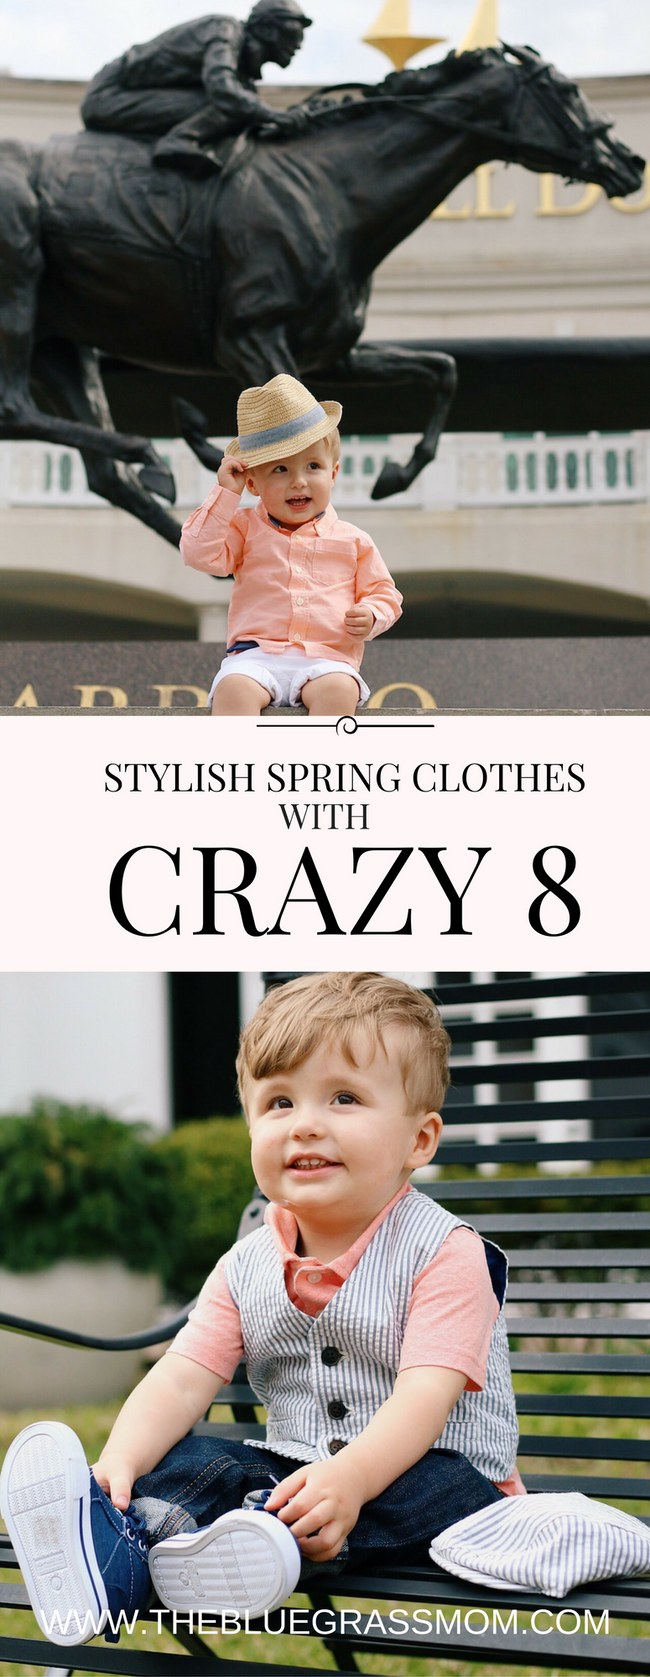 Stylish Spring Clothes with Crazy 8